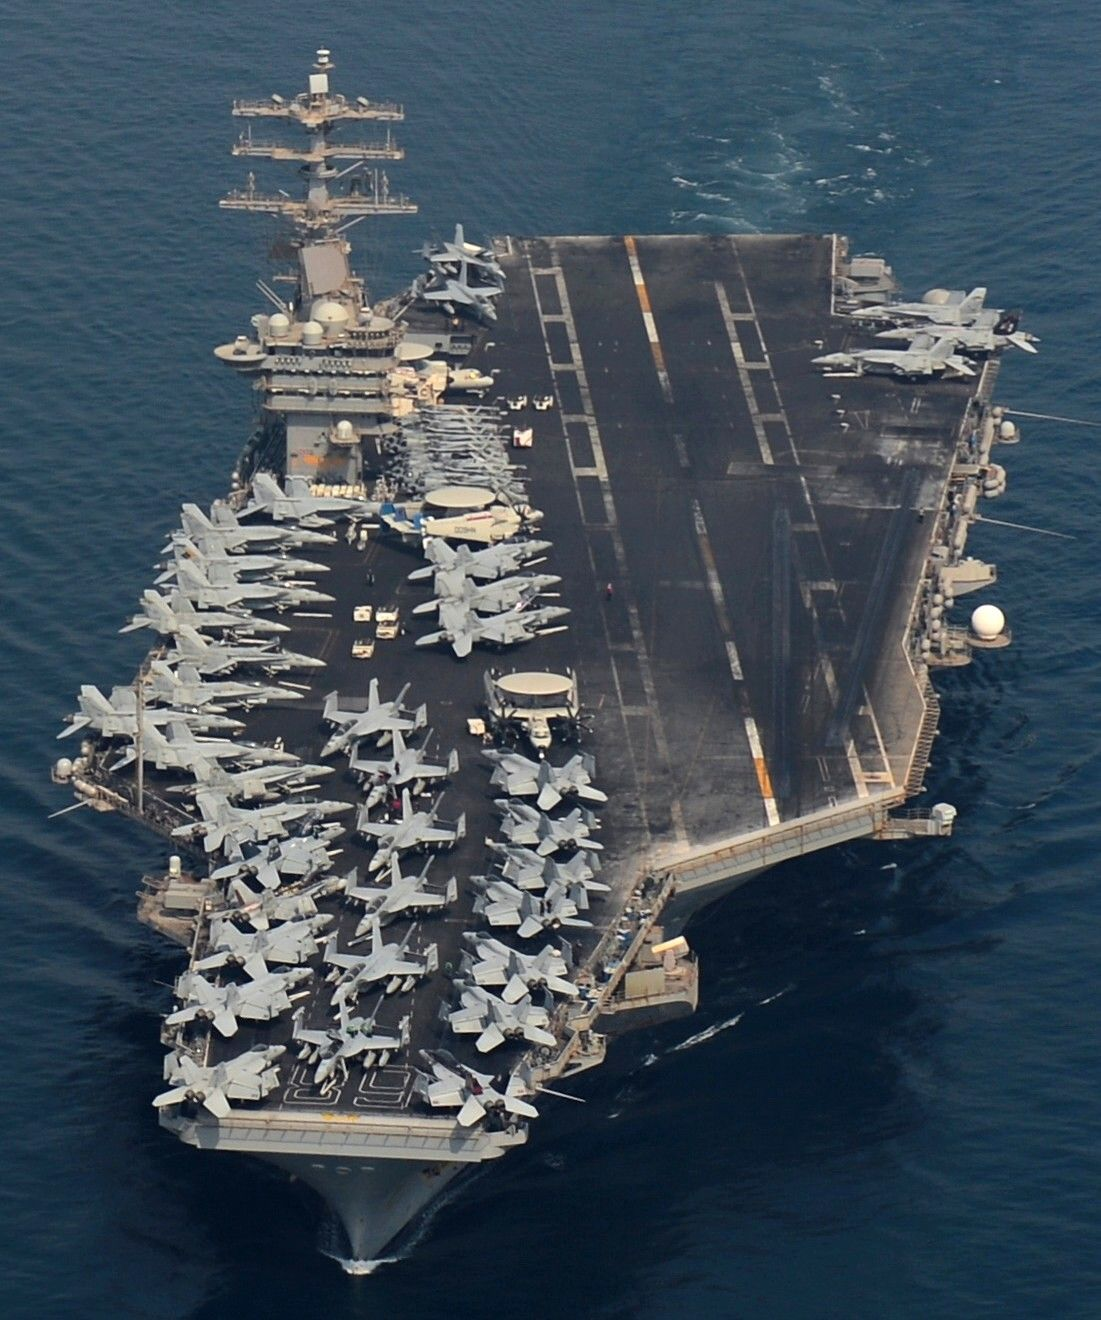 World's one of largest warships USS Nimitz in Indian Ocean to conduct Passex with Indian Navy